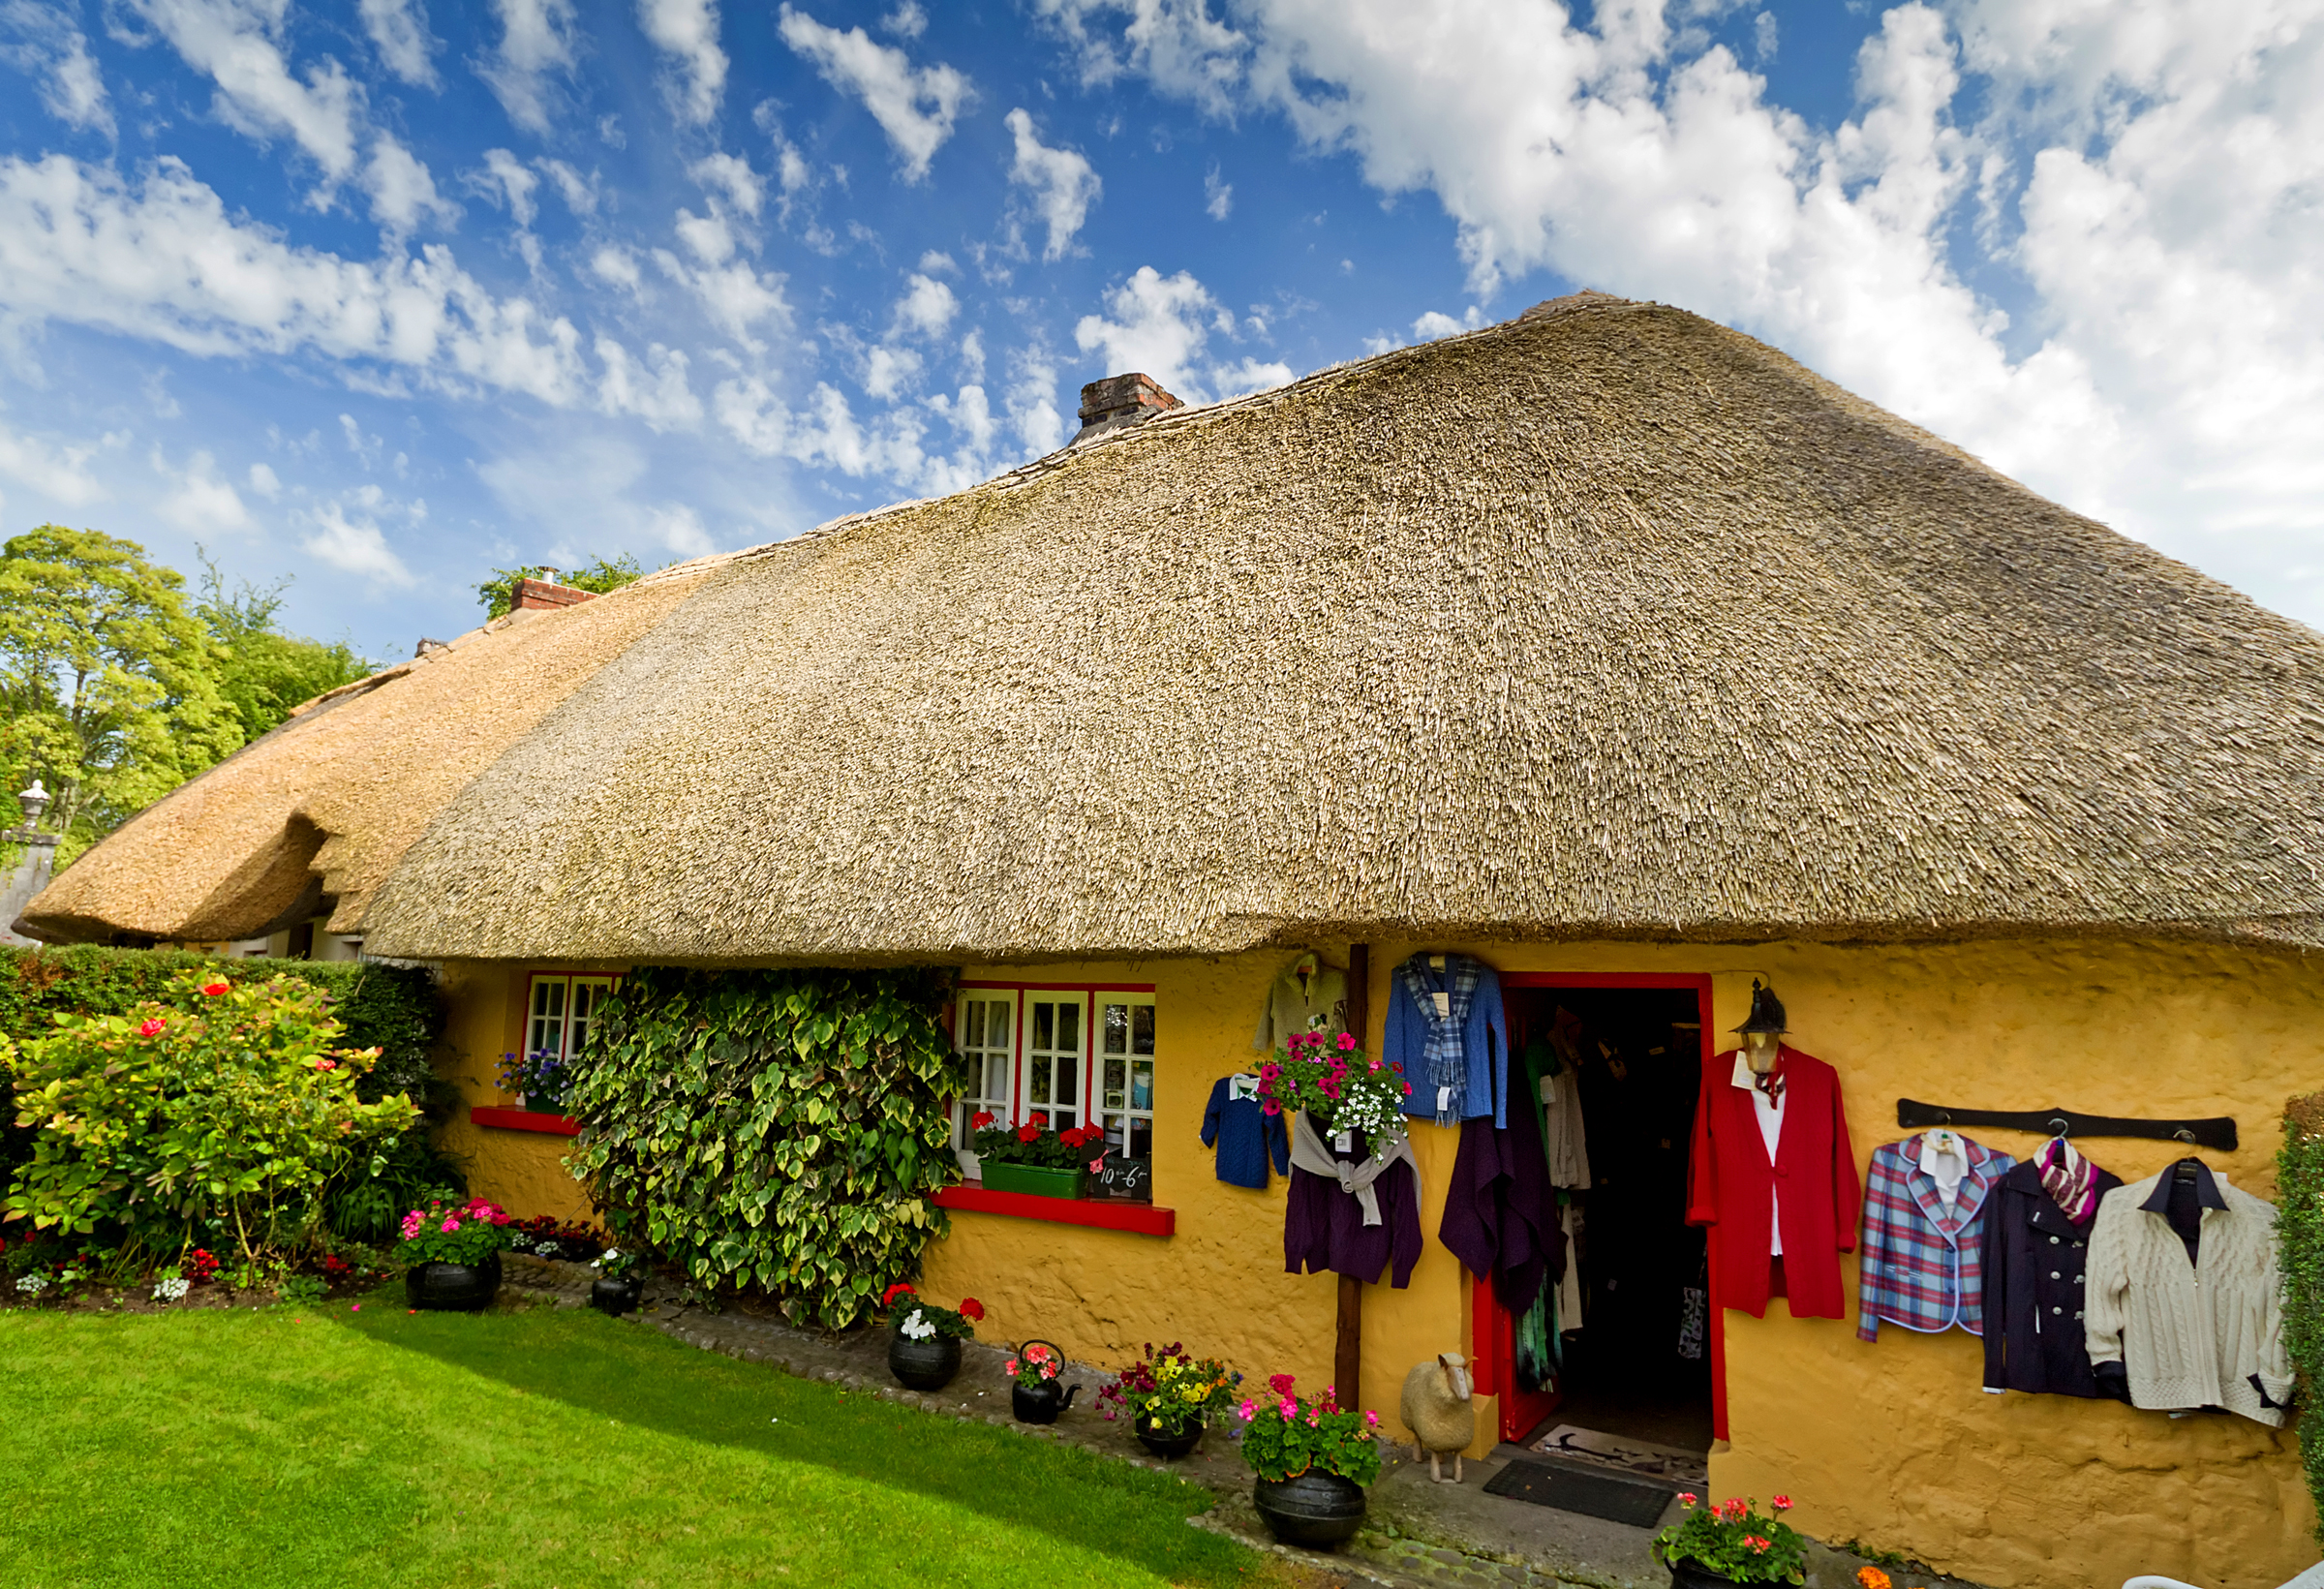 Adare Village in County Limerick, Ireland